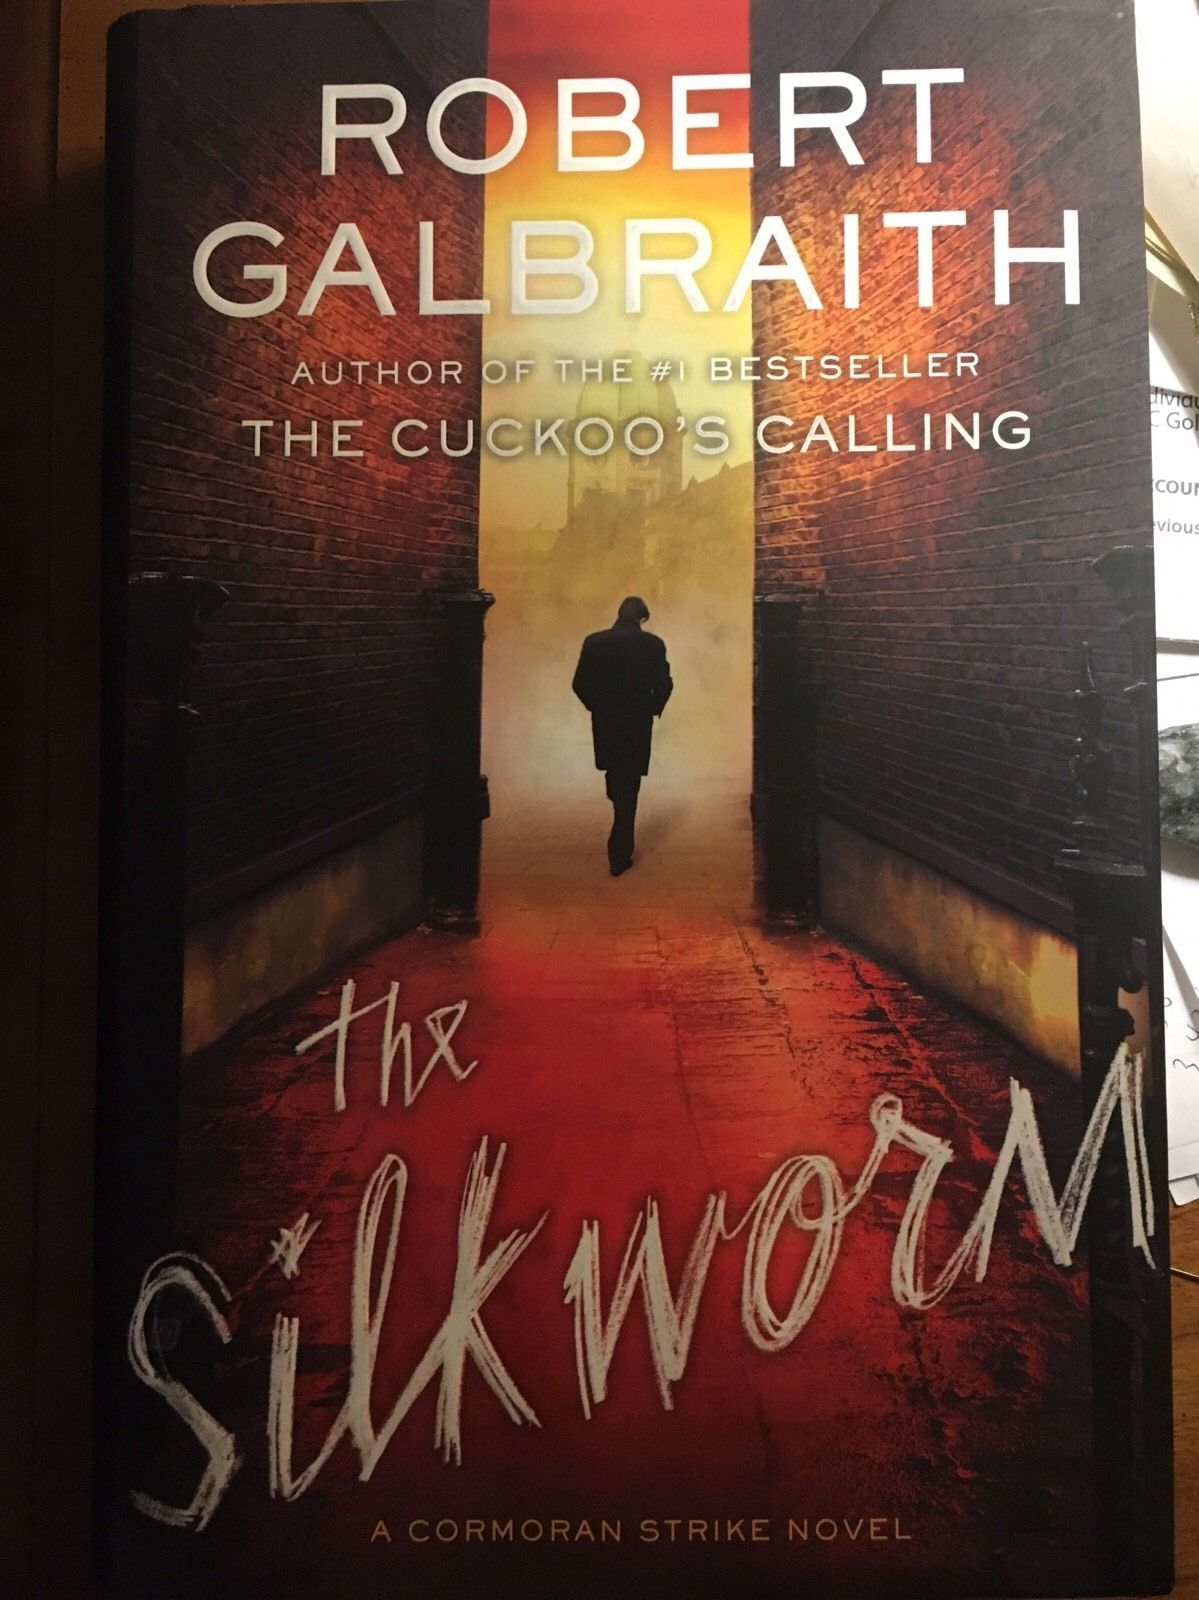 3 Cormoran Strike, Robert Galbraith: The CuckoosCalling, Silkworm, CareerOfEvil